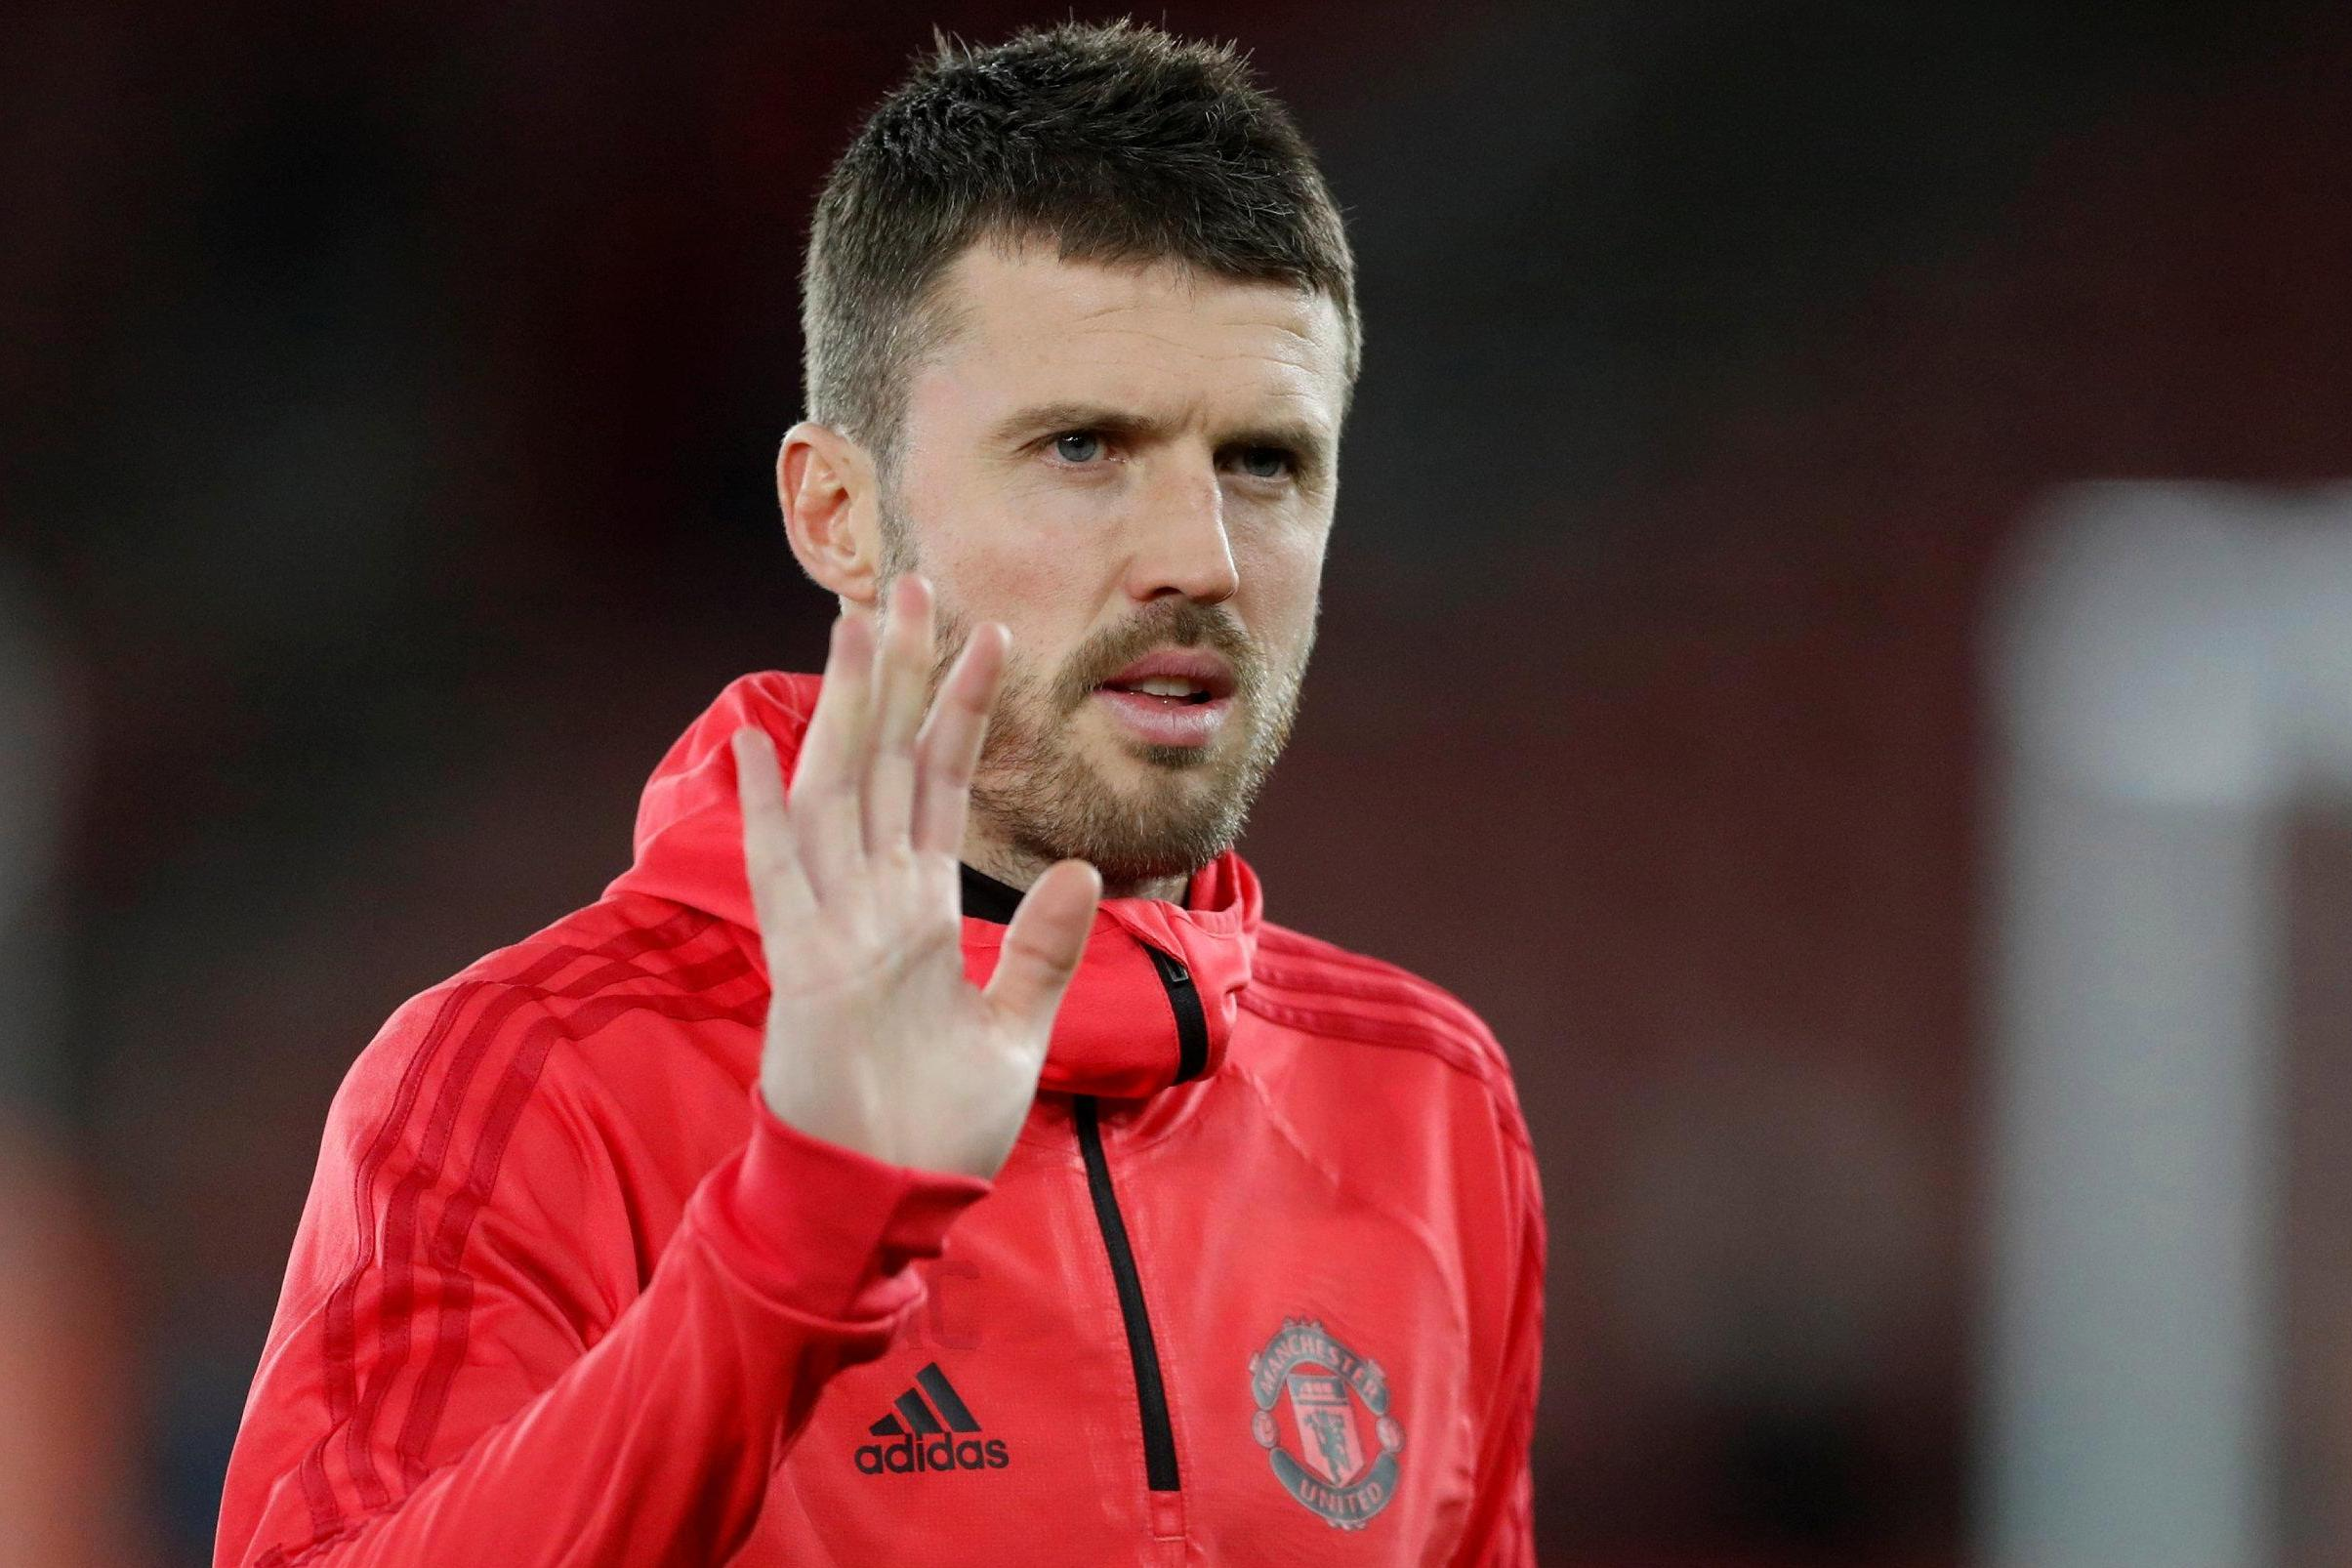 Man Utd new manager: Michael Carrick is new ODDS-ON favourite to replace Jose Mourinho as permanent manager